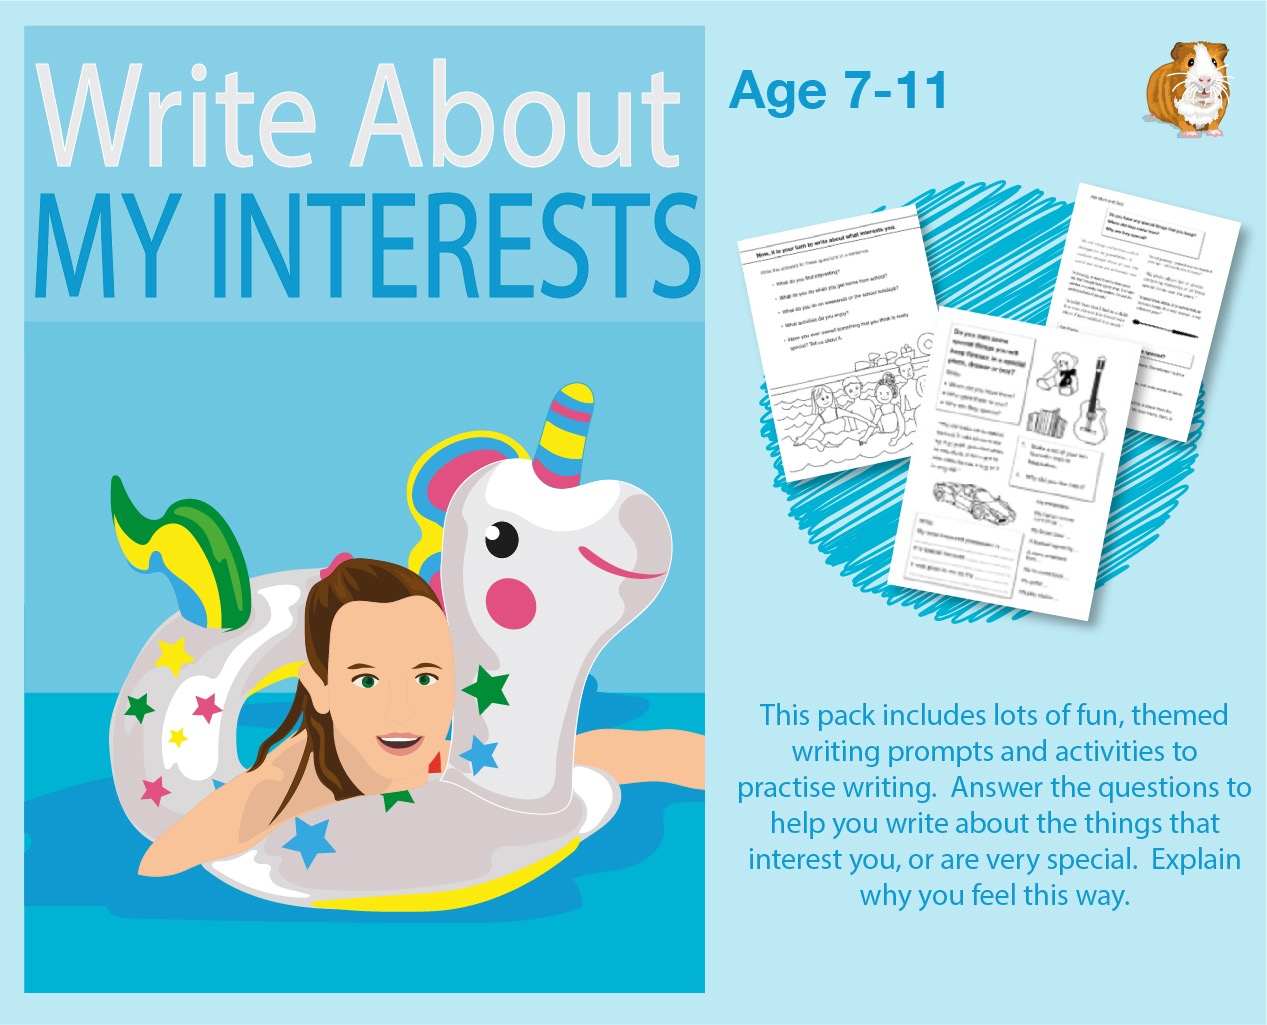 Write About My Interests (7-11 years)